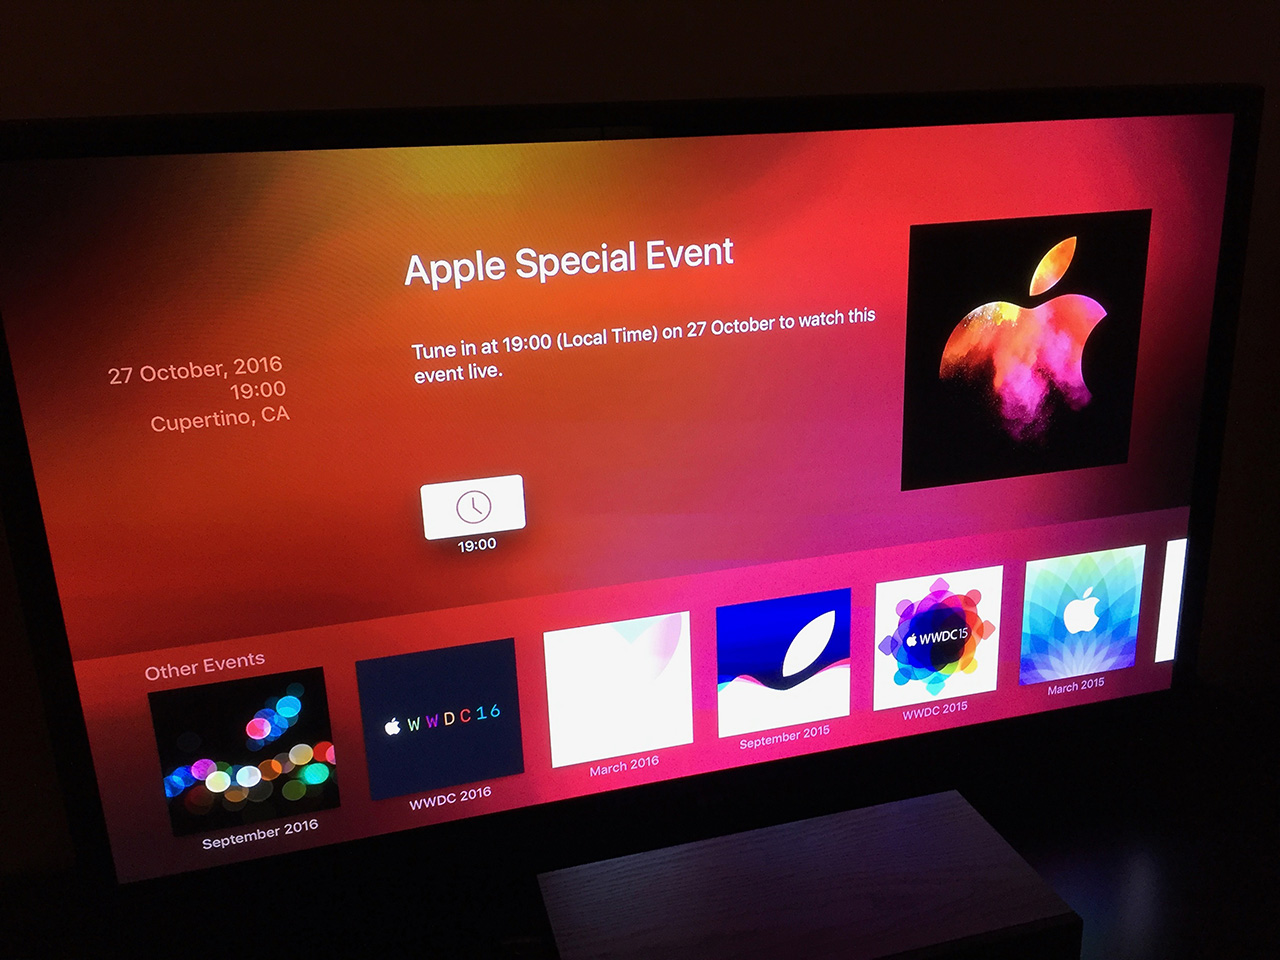 Apple Special Event October 2016